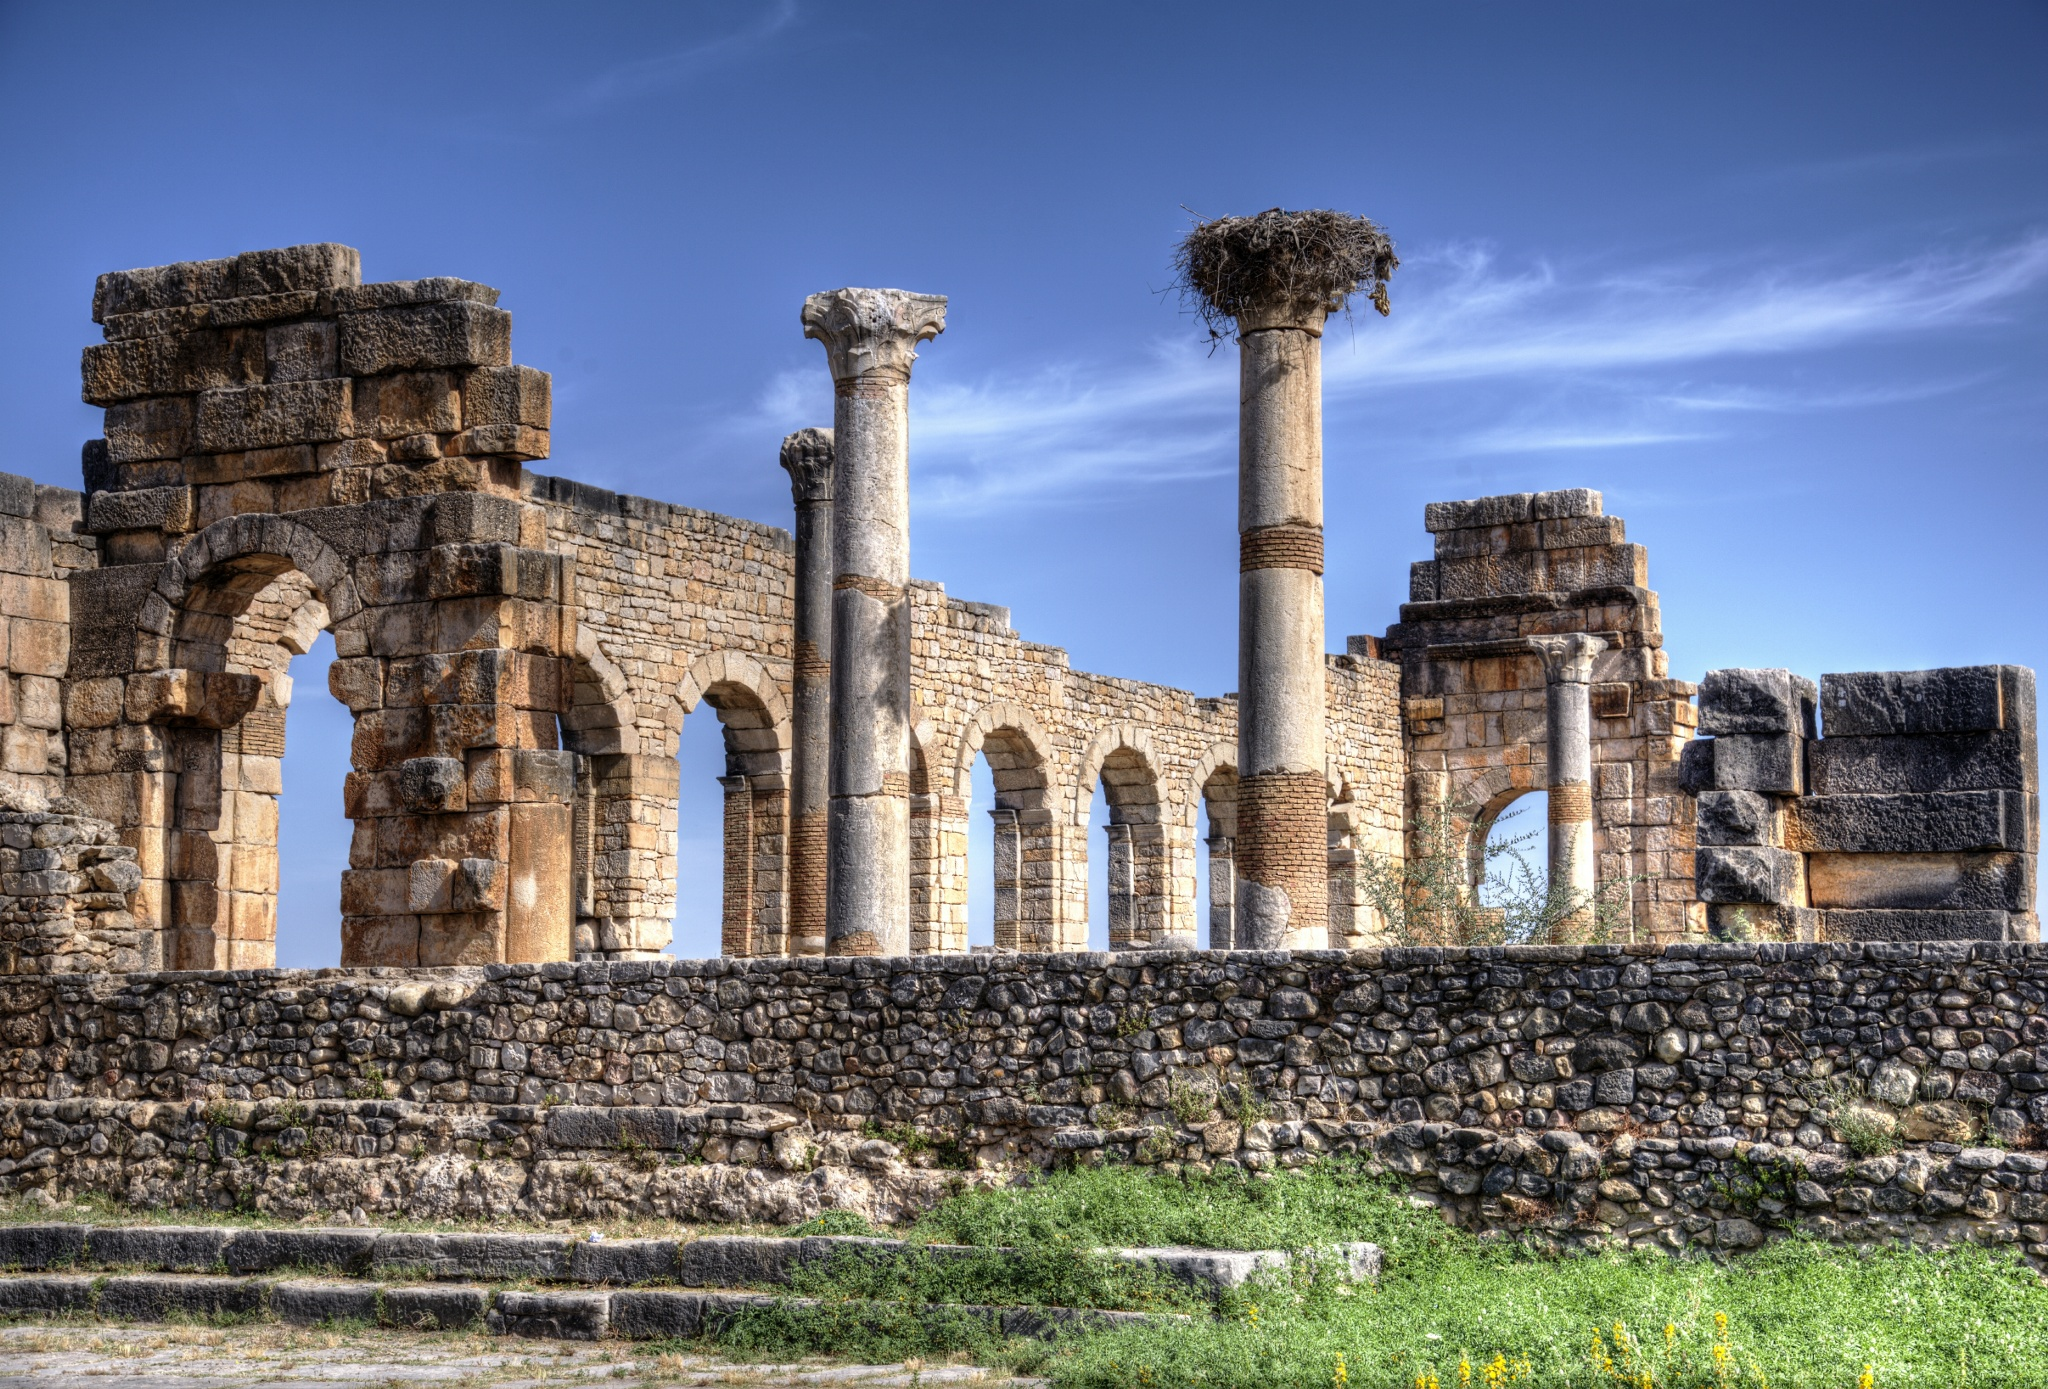 Volubilis (Morocco) - The Roman ruins of Volubilis sit in the middle of a fertile plain about 33km north of Meknès, and can easily be combined with nearby Moulay Idriss to make a fantastic day trip from Meknès. The city is the best-preserved archaeological site in Morocco and was declared a Unesco World Heritage site in 1997. Its most amazing features are its many beautiful mosaics preserved in situ.KNOW MORERECOMMENDED ITINERARY